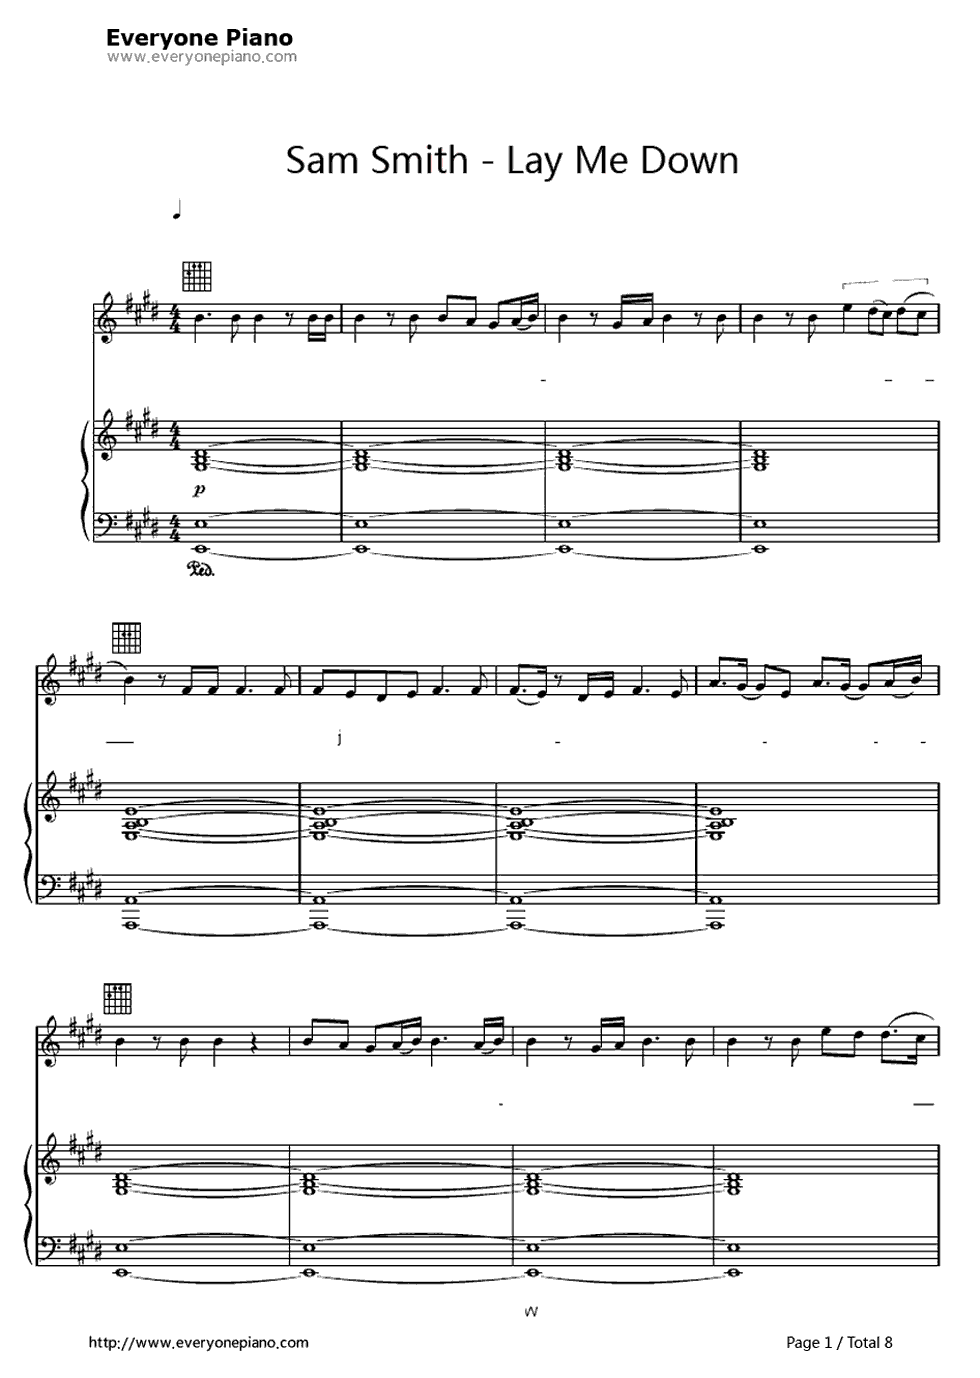 Free Lay Me Down Sam Smith Sheet Music Preview 1 Music Pinterest